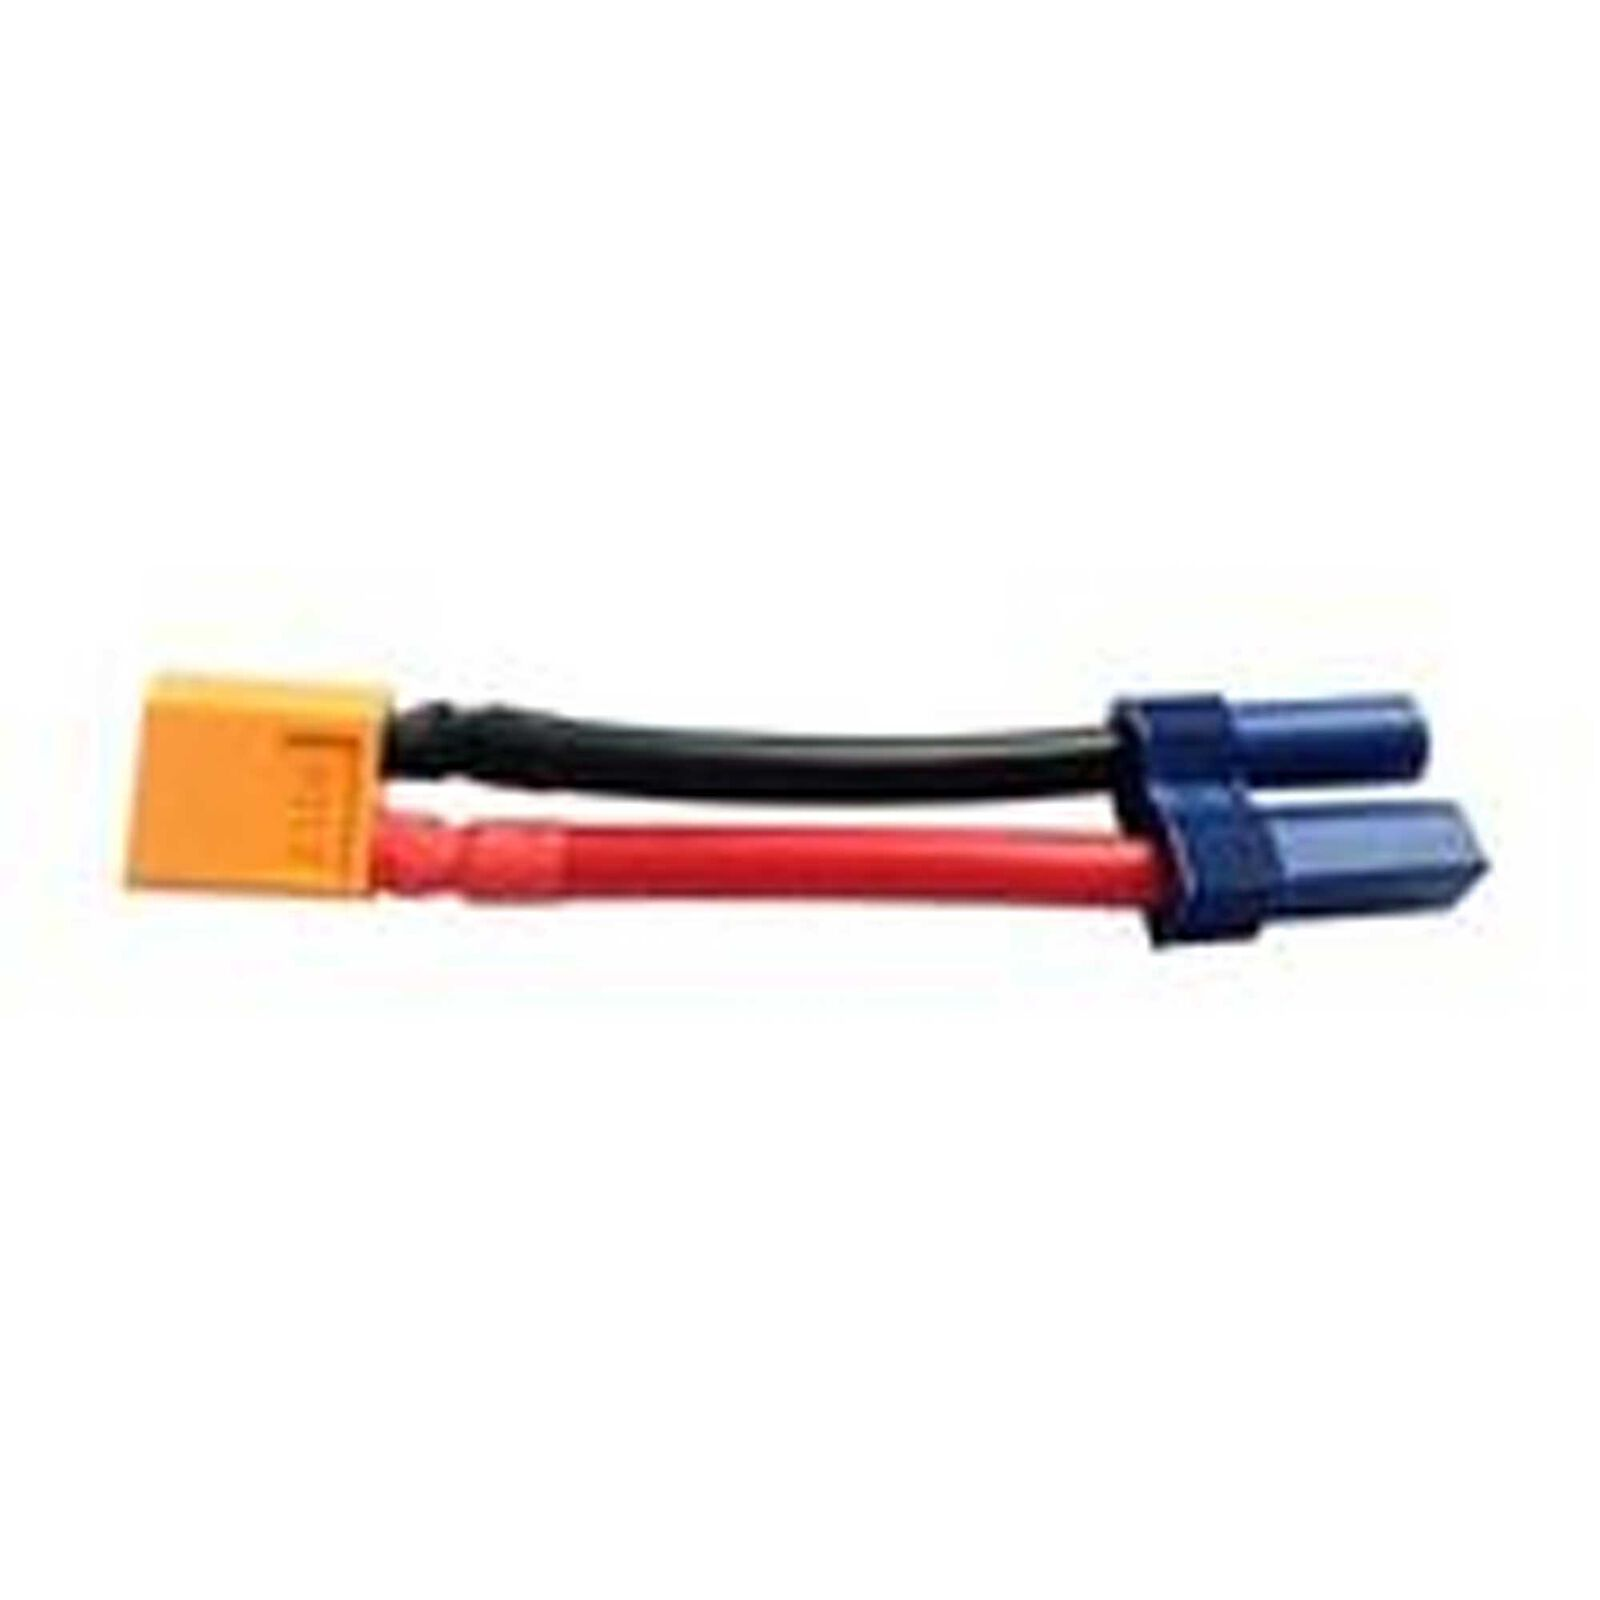 Adapter: XT60 Device / EC5 Battery, 10 AWG